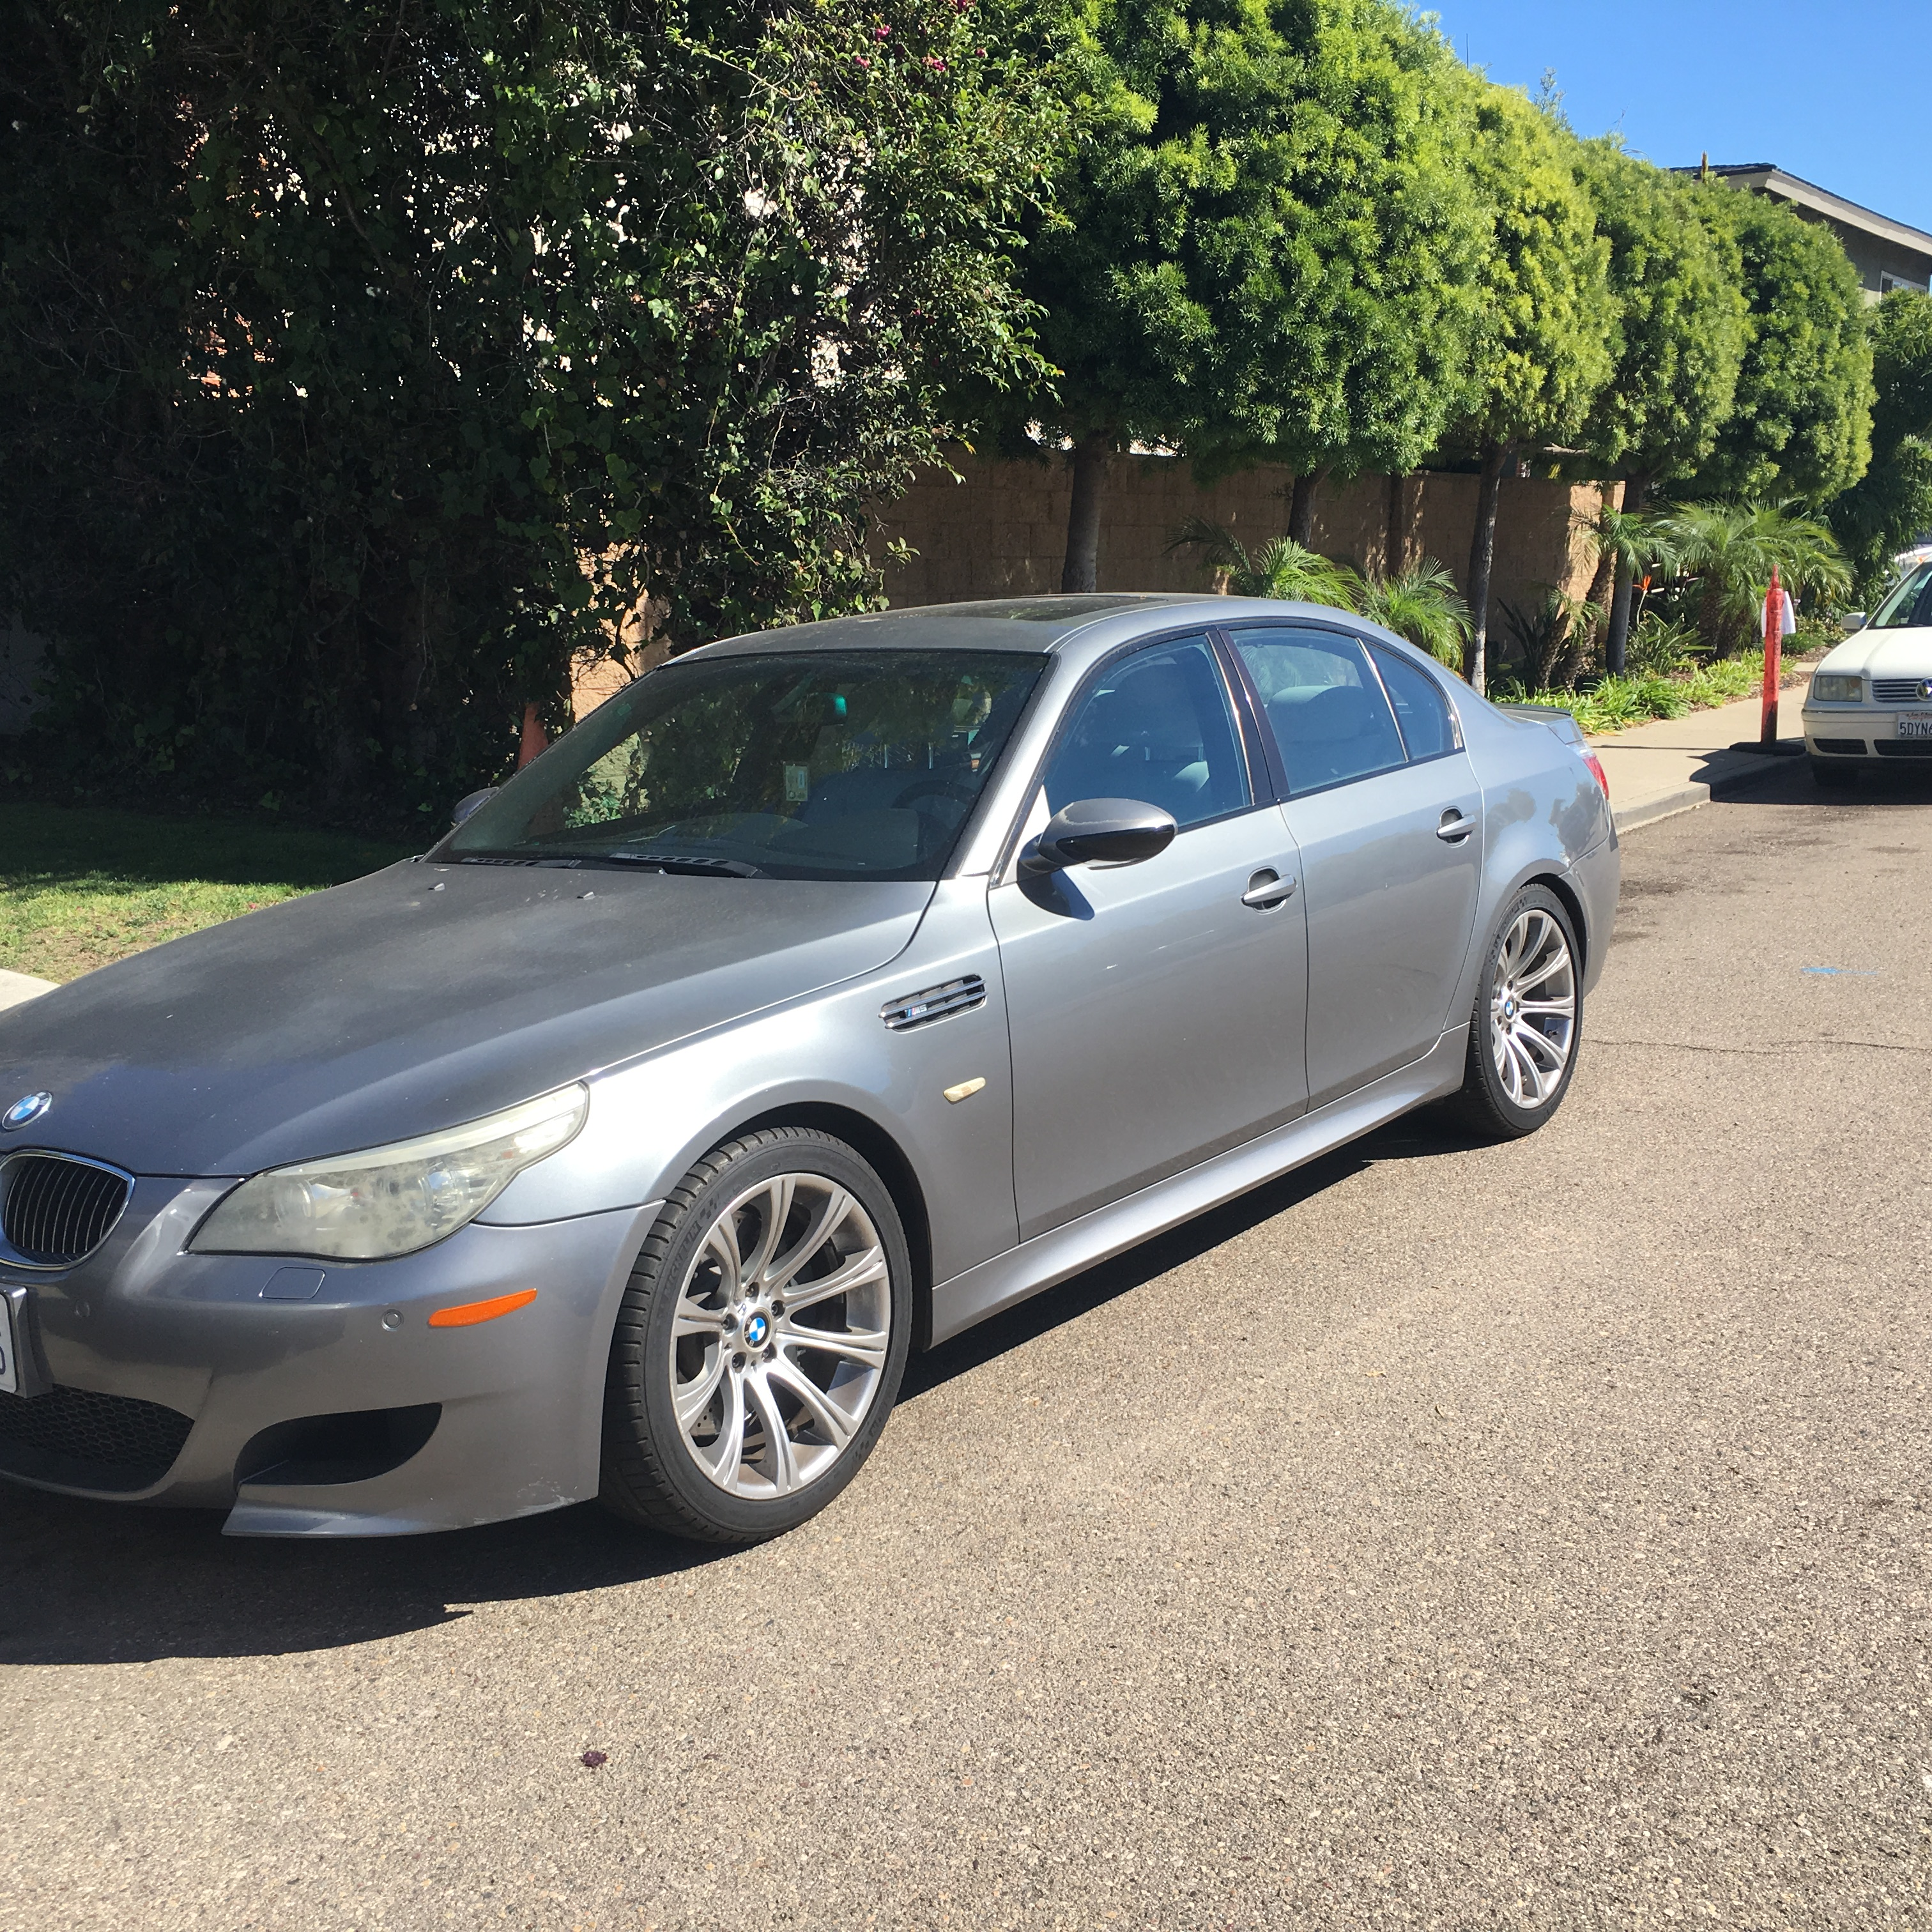 Bmw M5: New User & Owner, E60 M5 Questions